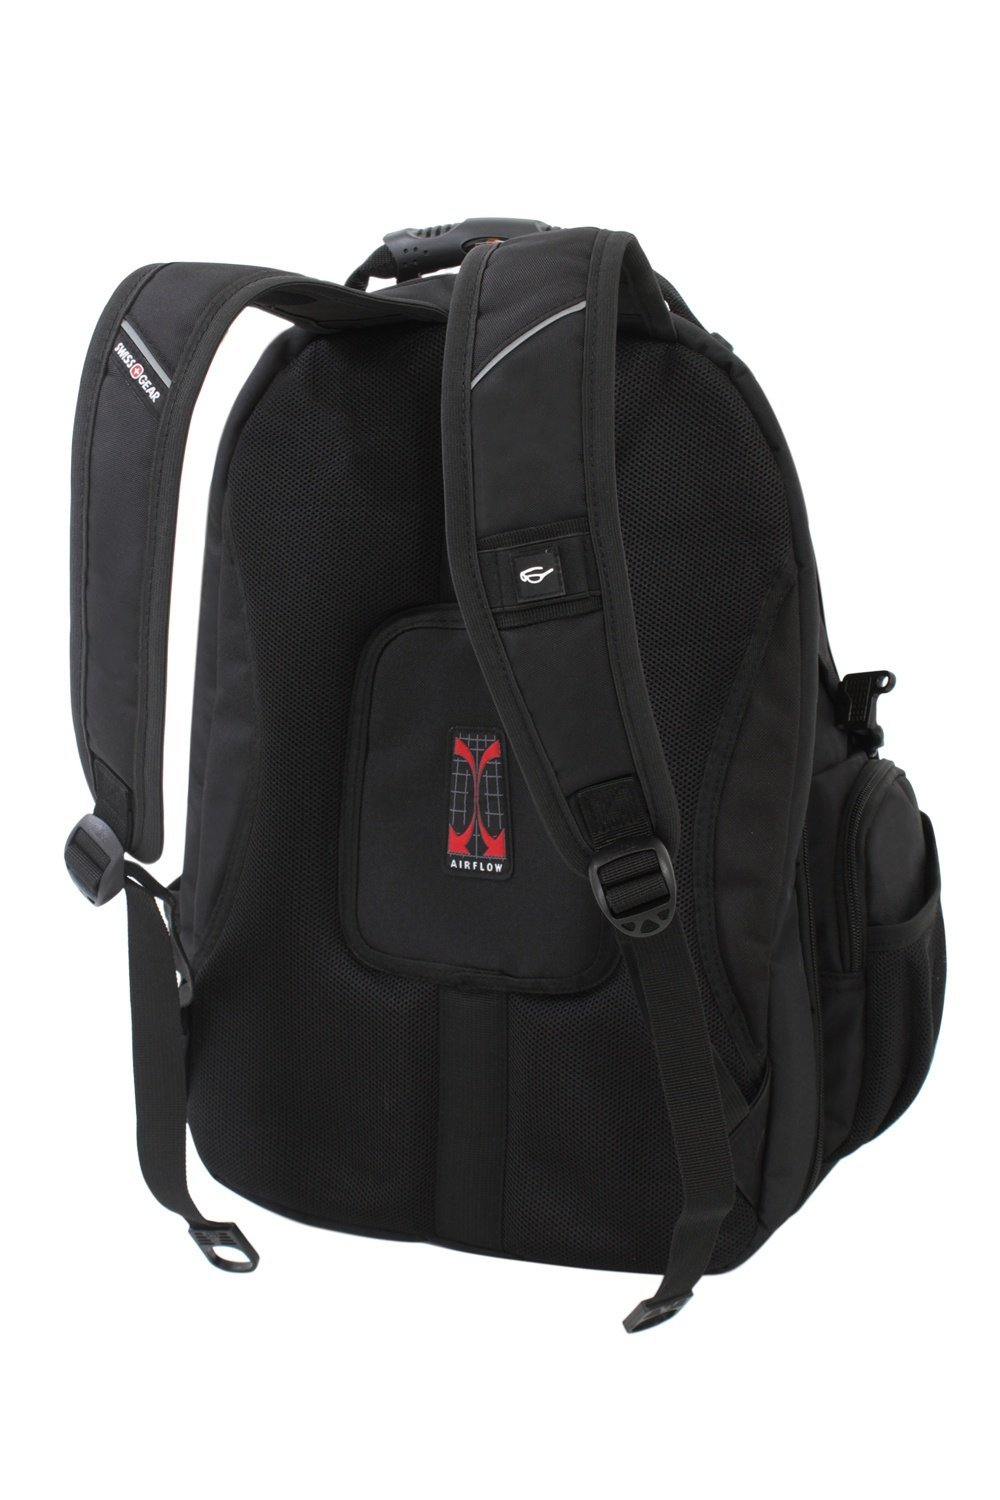 swissgear laptop backpack smartscan